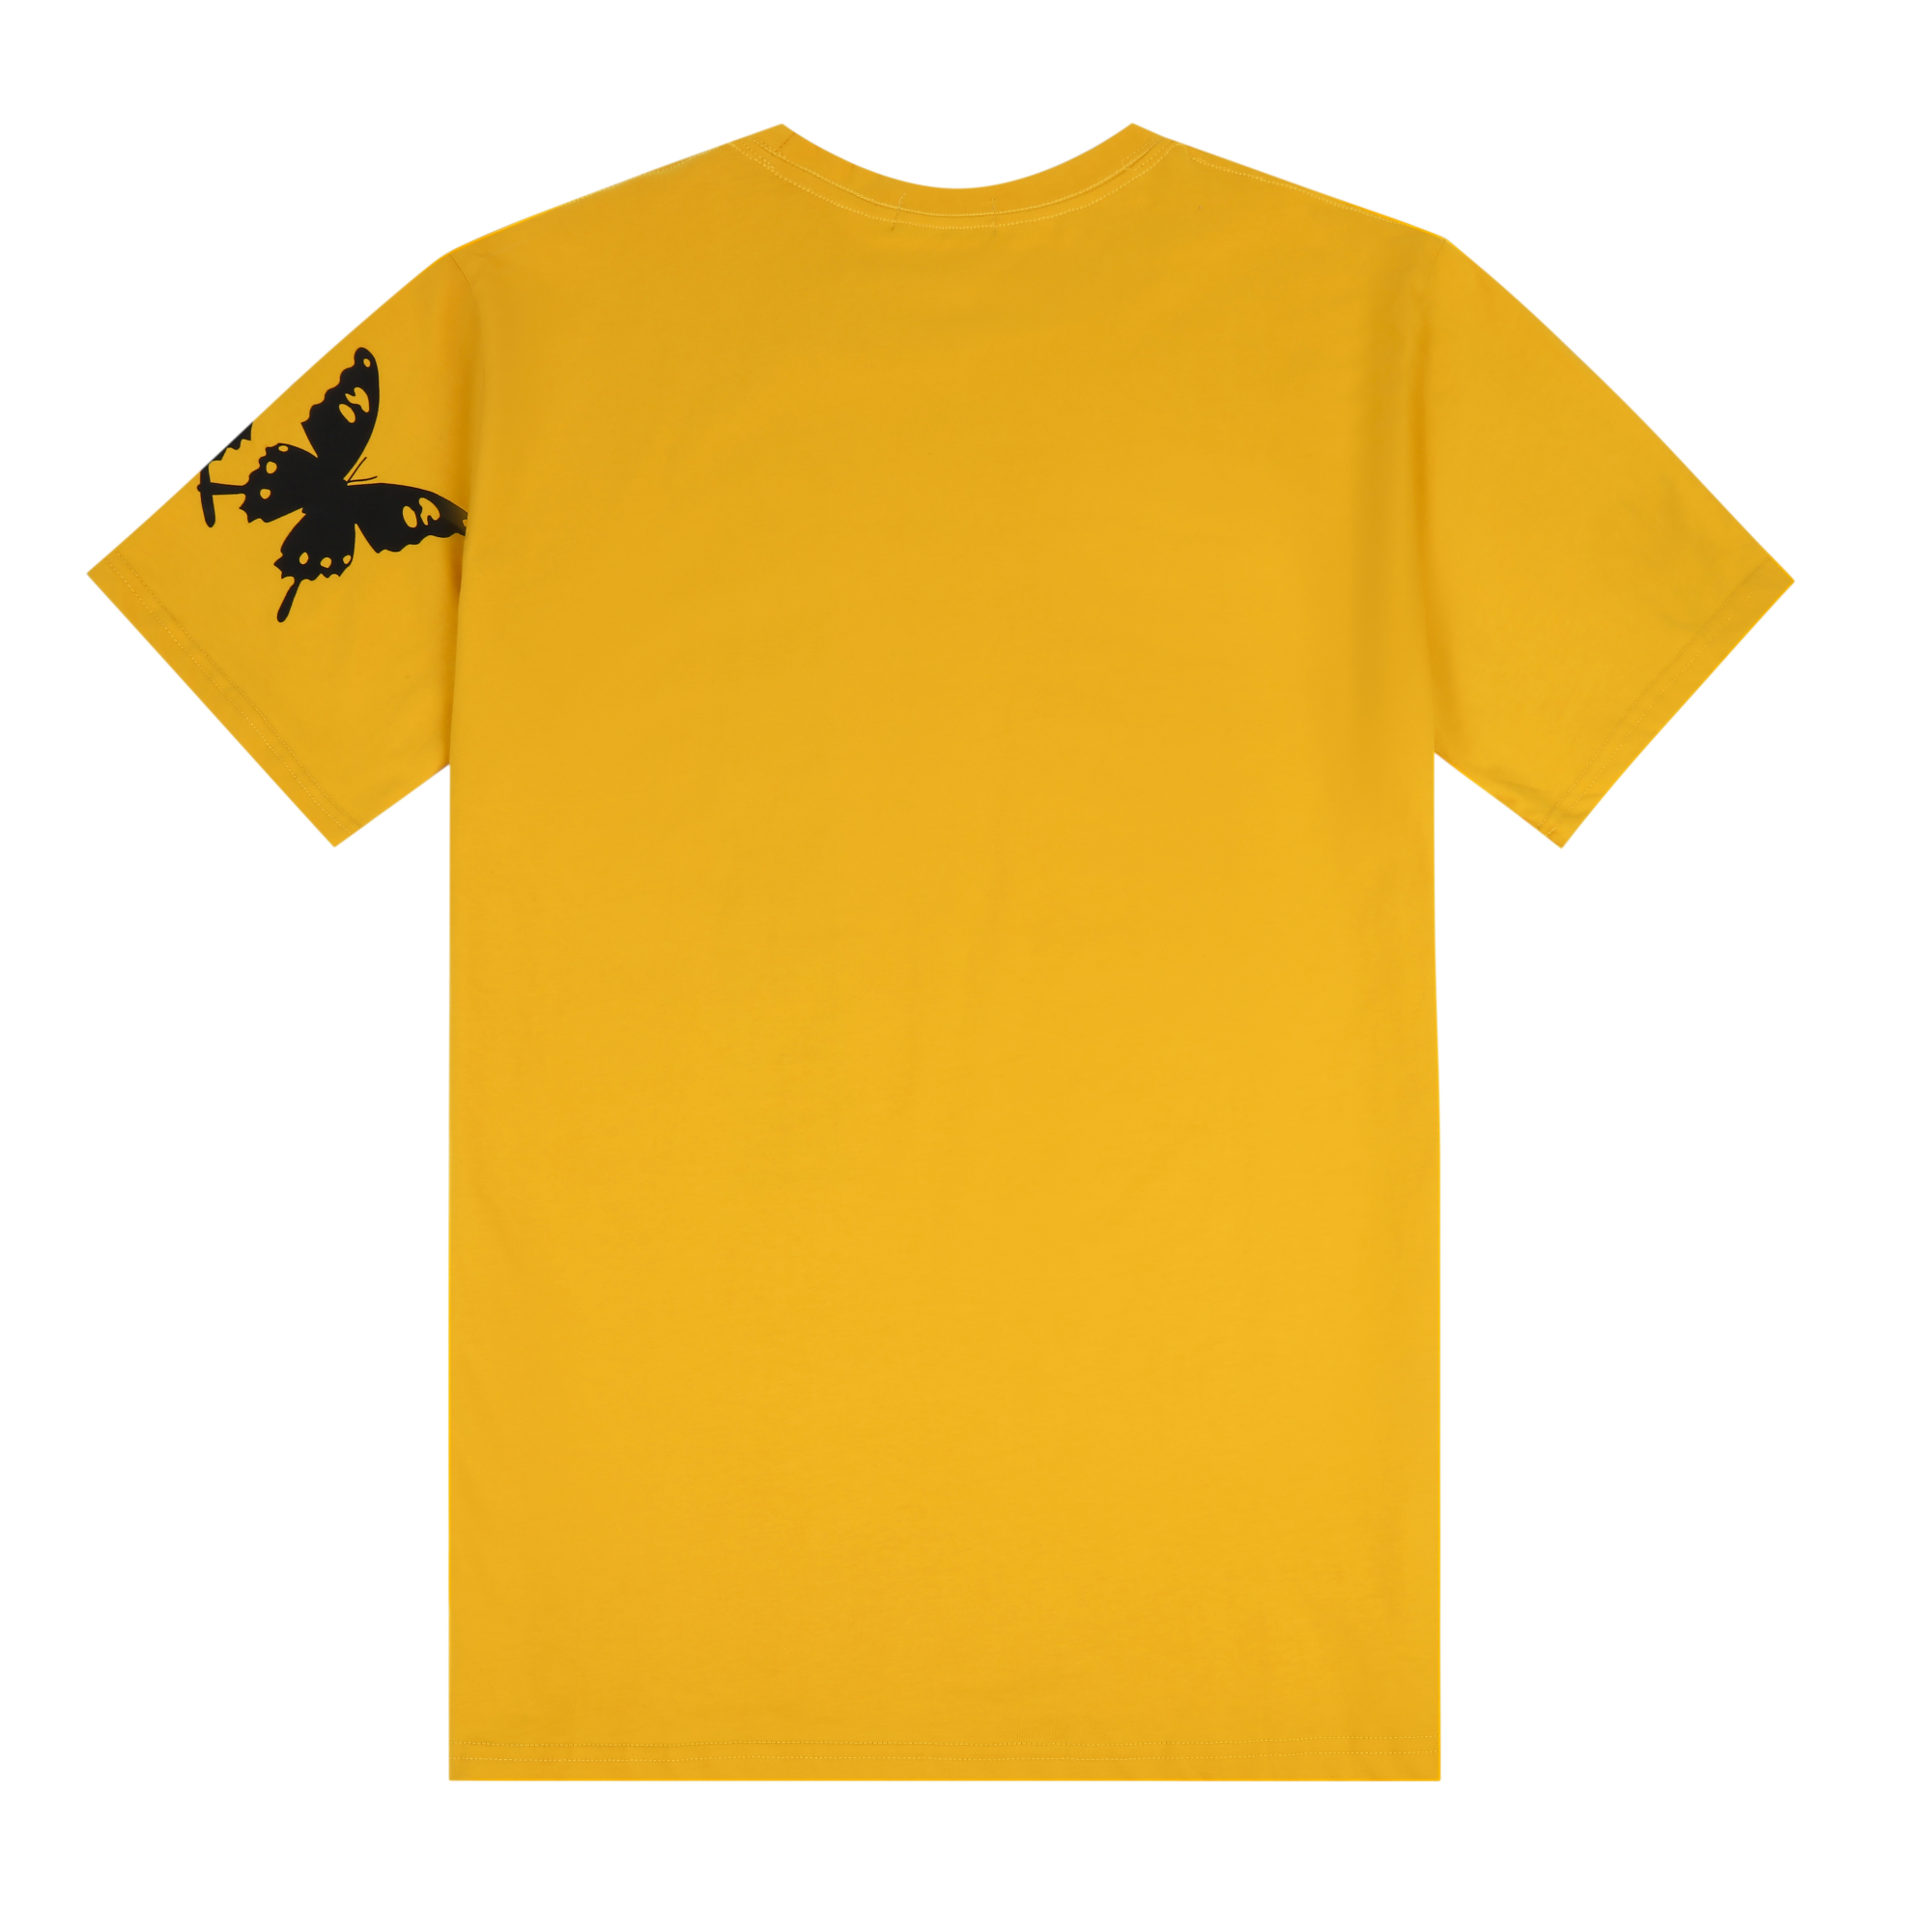 Beauty Landed on Me - Oversized Tee- Yellow